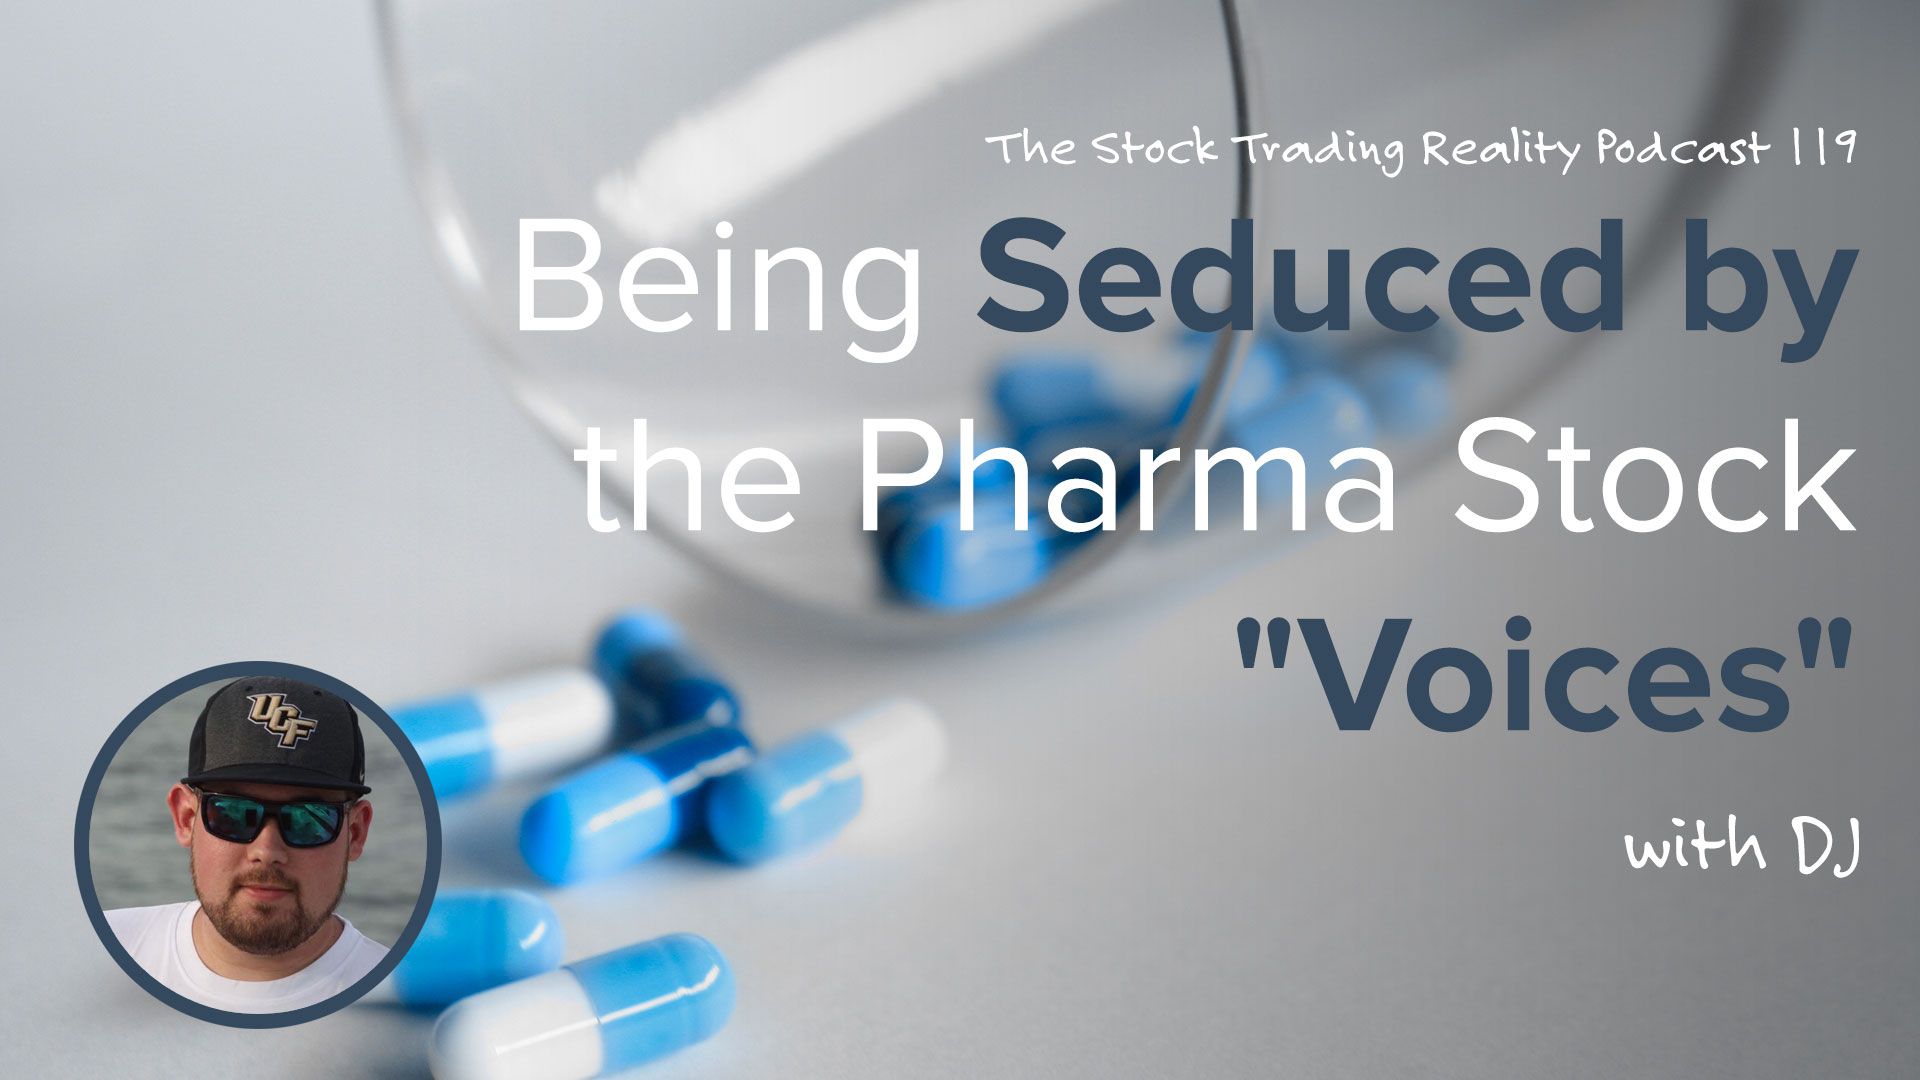 """STR 119: Being Seduced by the Pharma Stock """"Voices"""""""